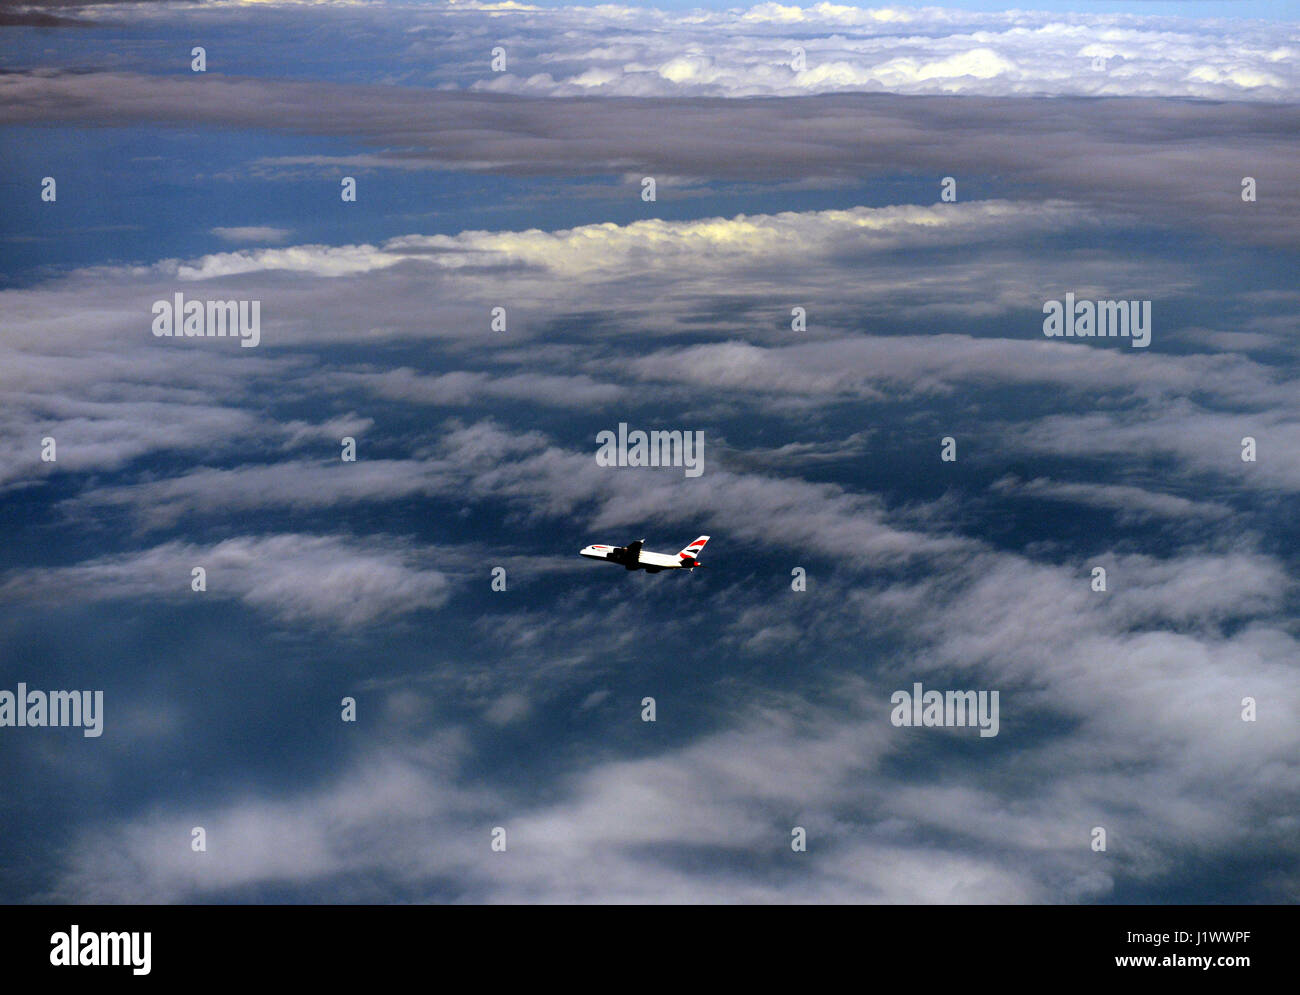 British airways Airbus A380 flying high above the clouds. - Stock Image